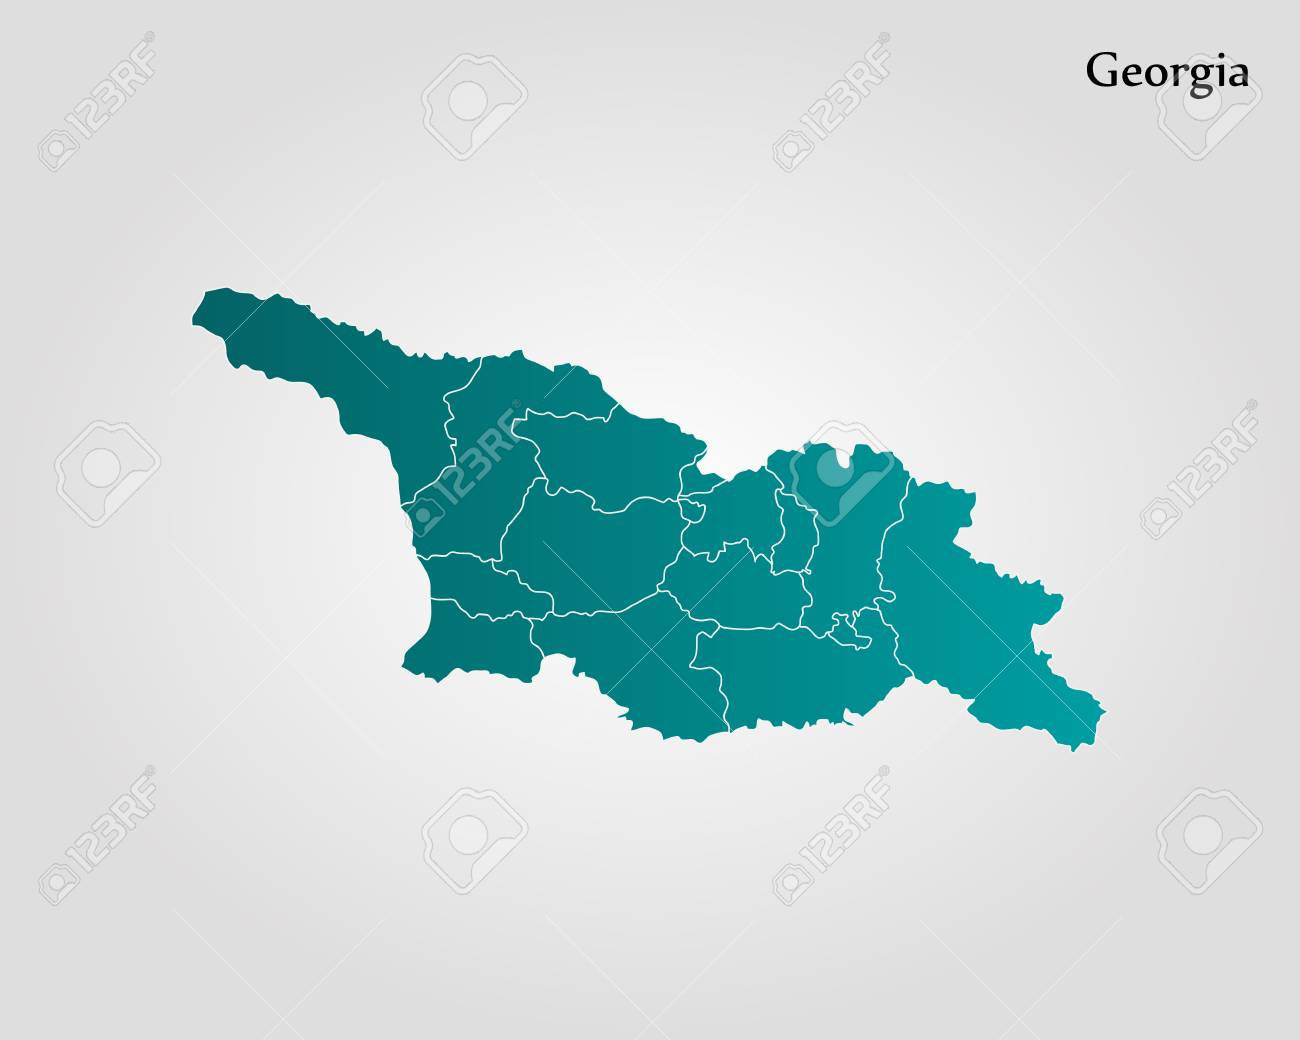 Map Of Georgia Vector Illustration World Map Royalty Free Cliparts